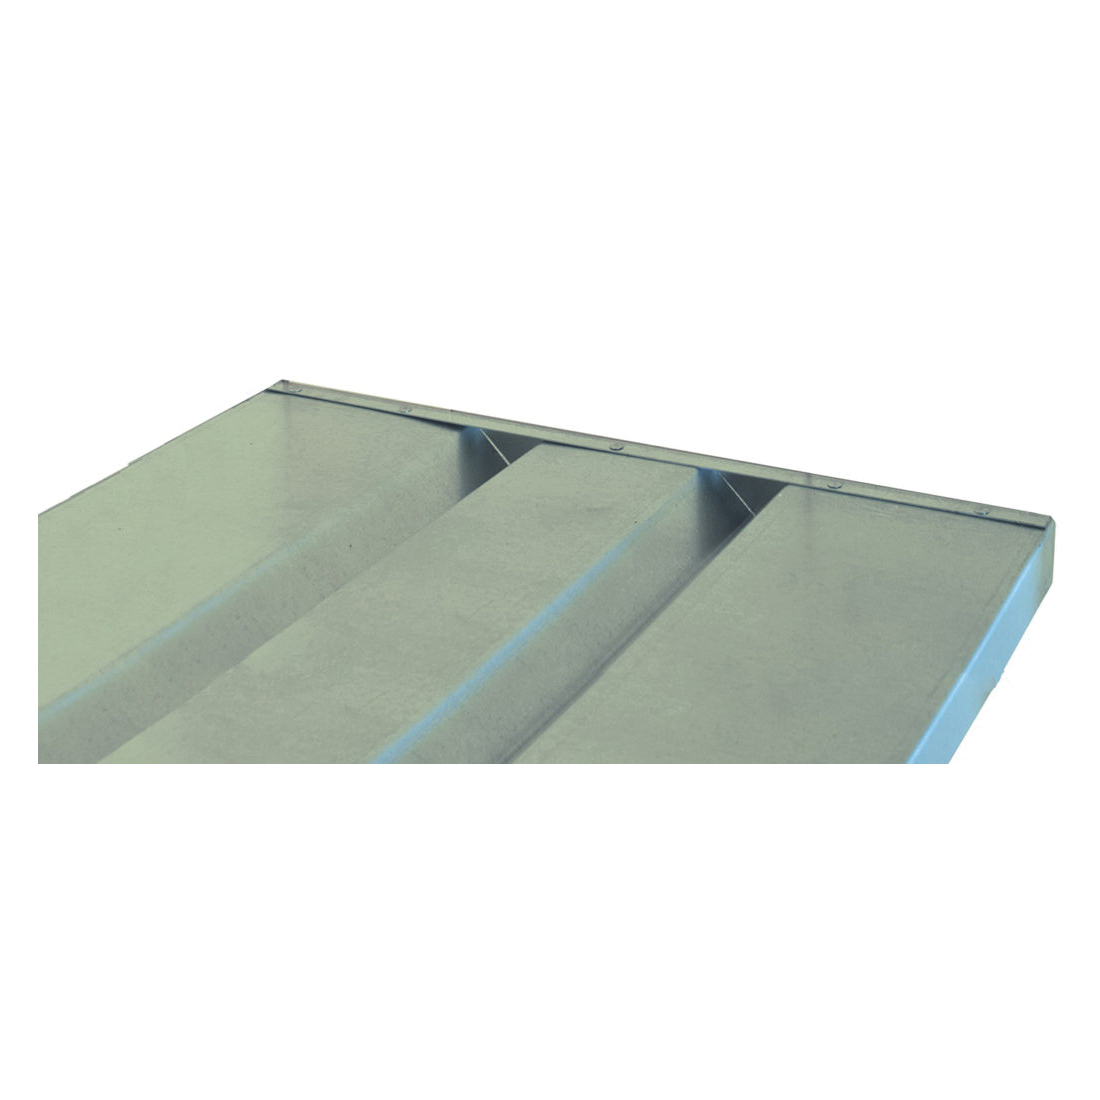 LYON® N5468 Extra Shelf, For Use With R5467 Under Counter Flammable Liquid Cabinet